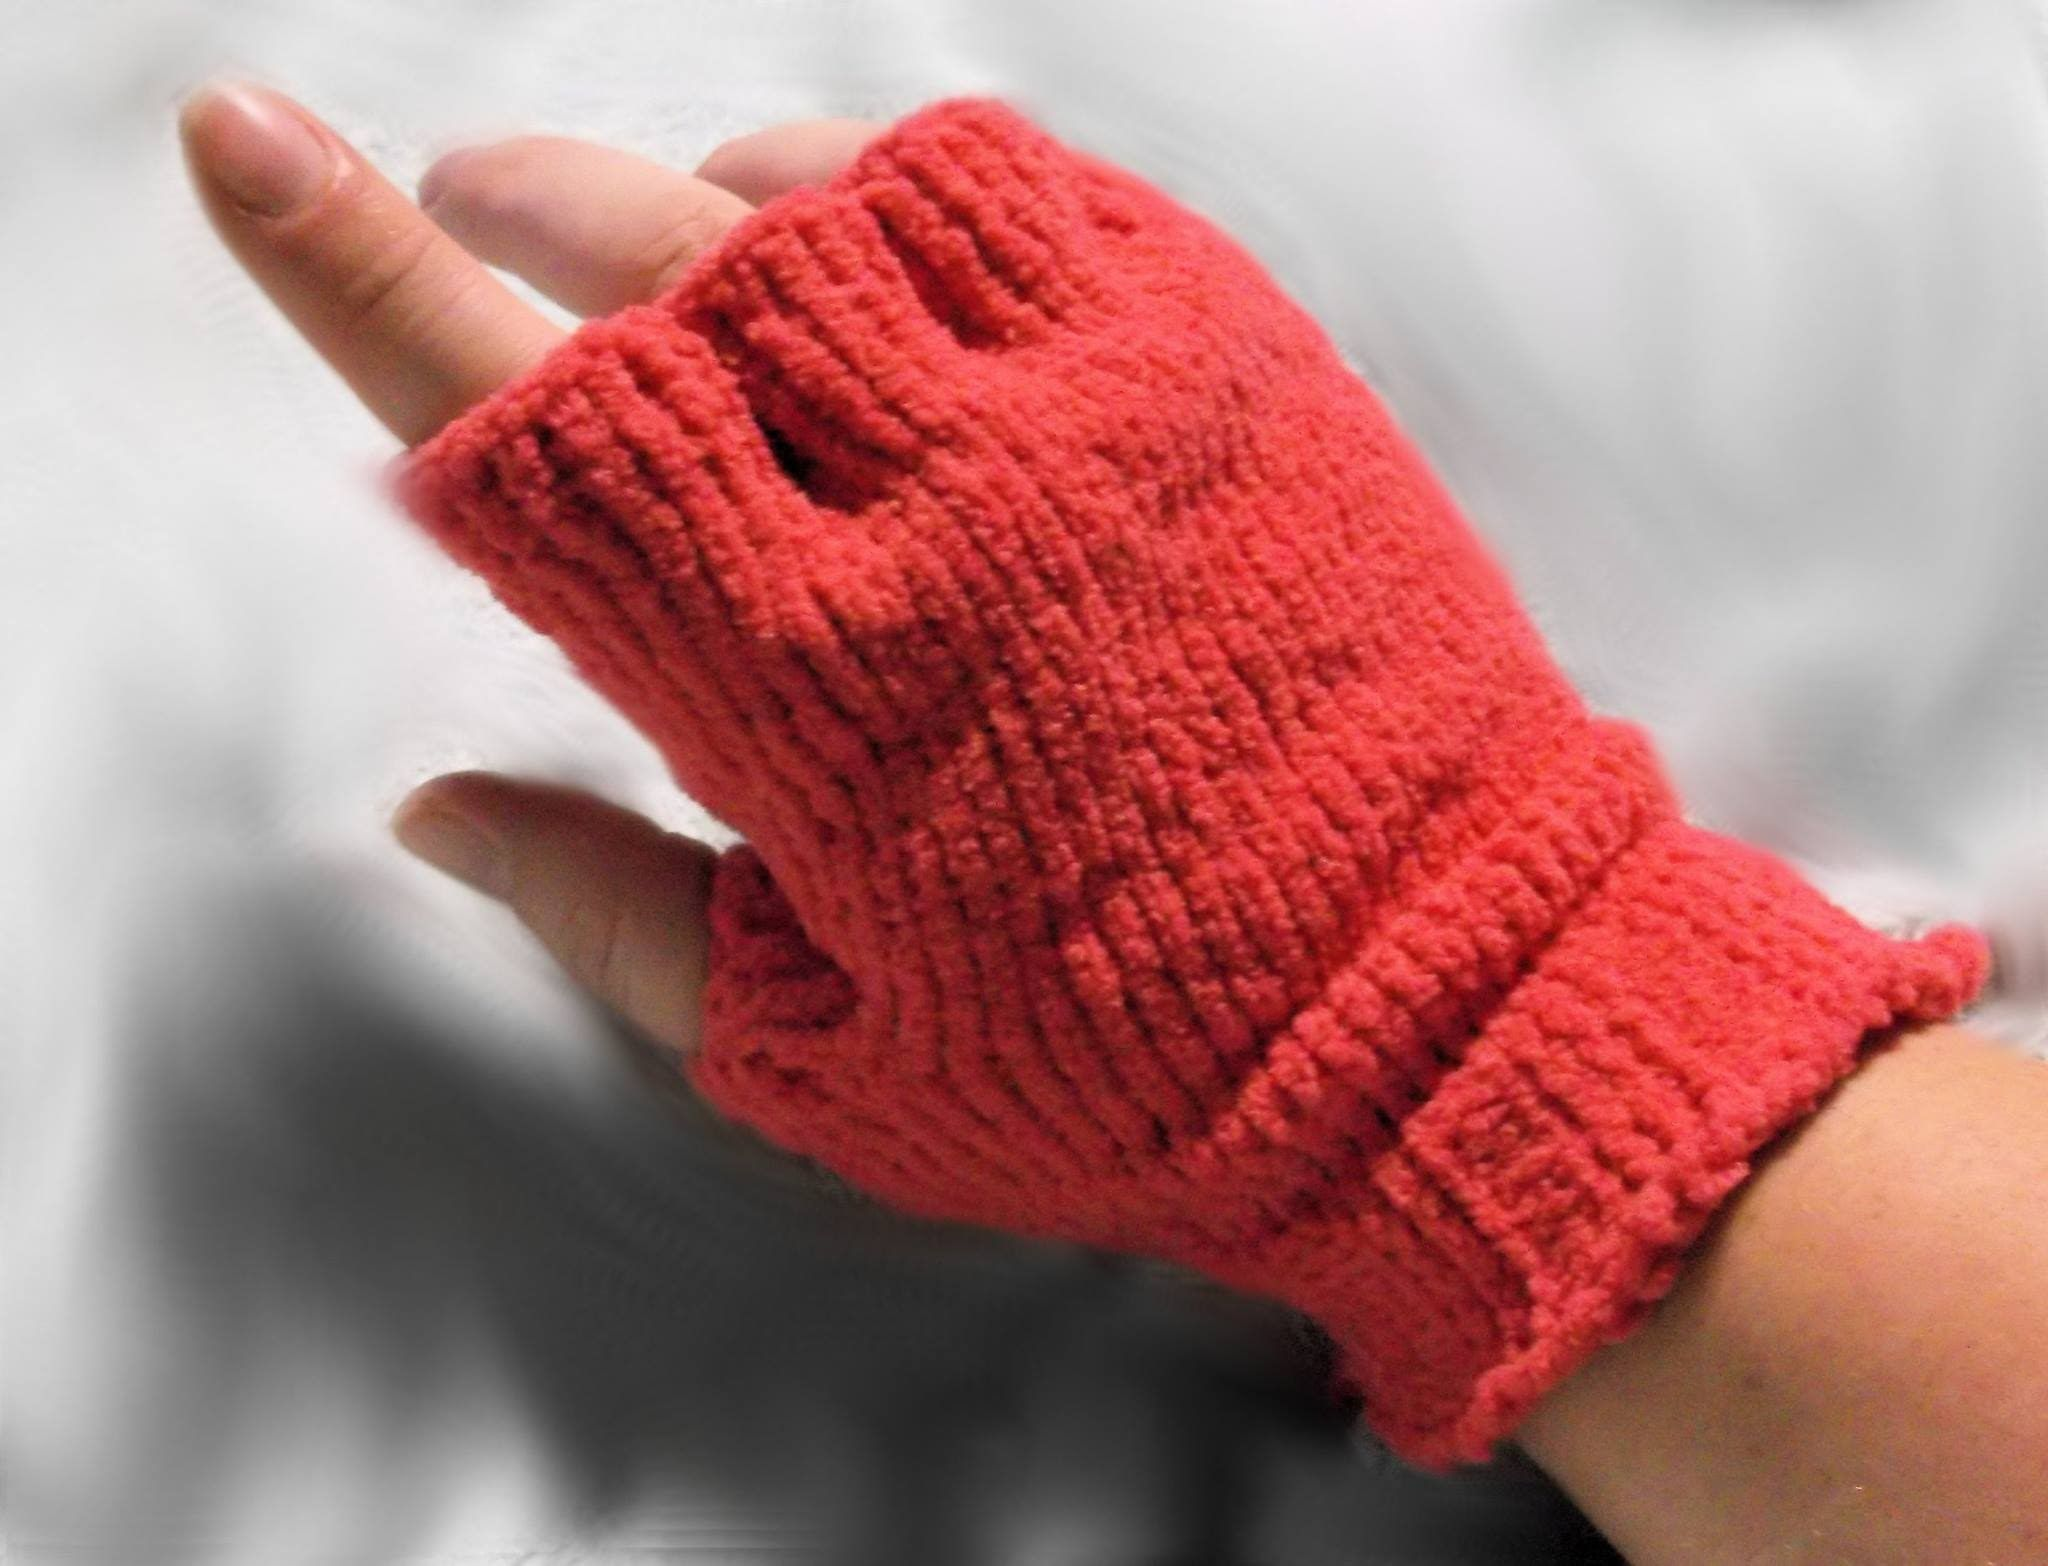 How to Loom Knit Half Finger Gloves | Loom Knitting Projects ...